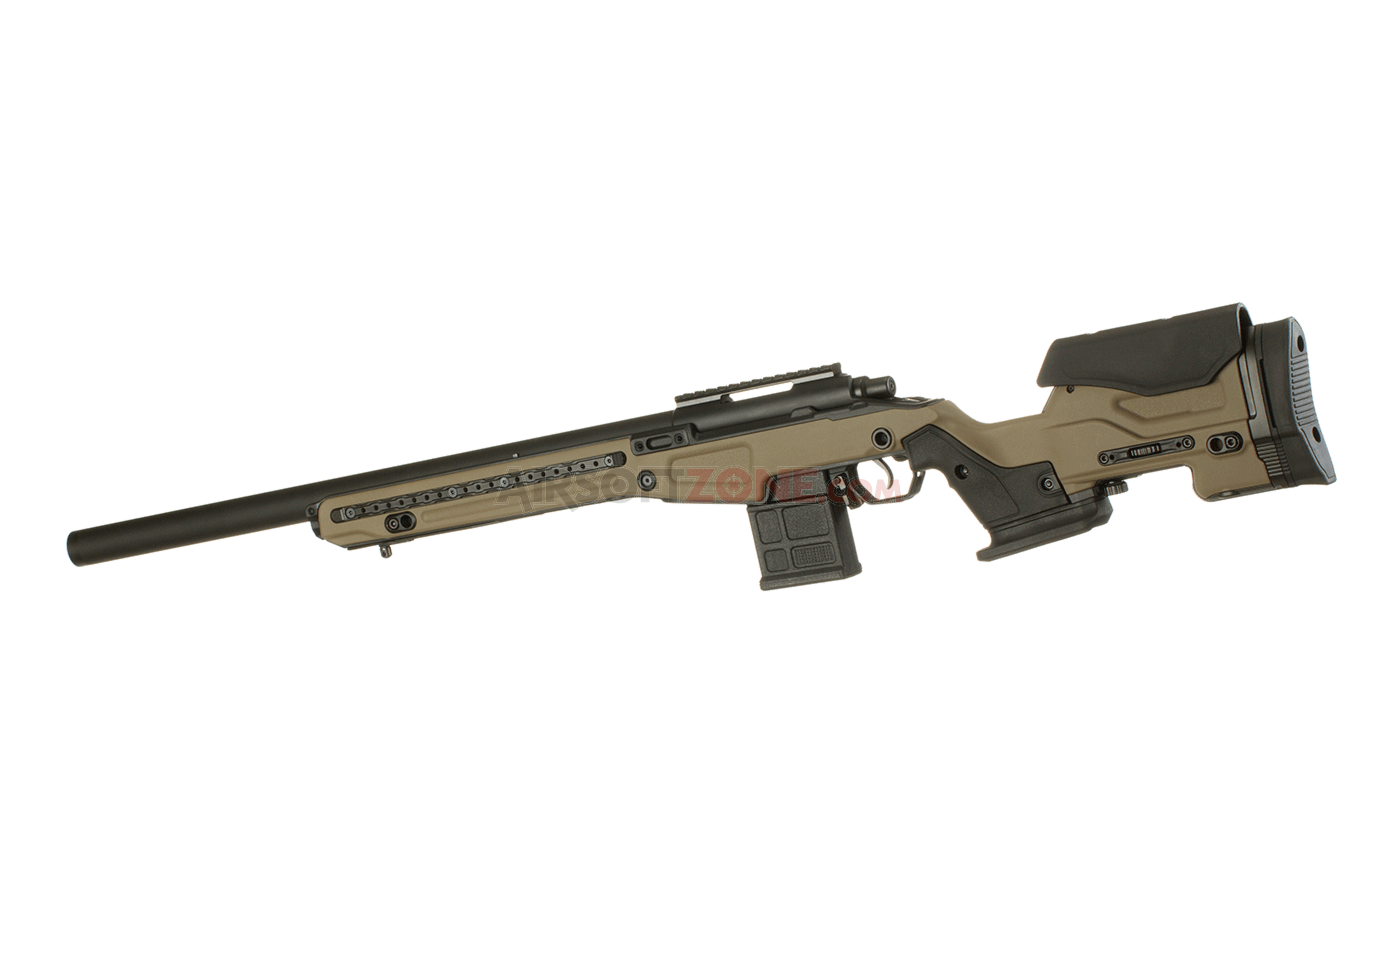 T10 action army vsr10